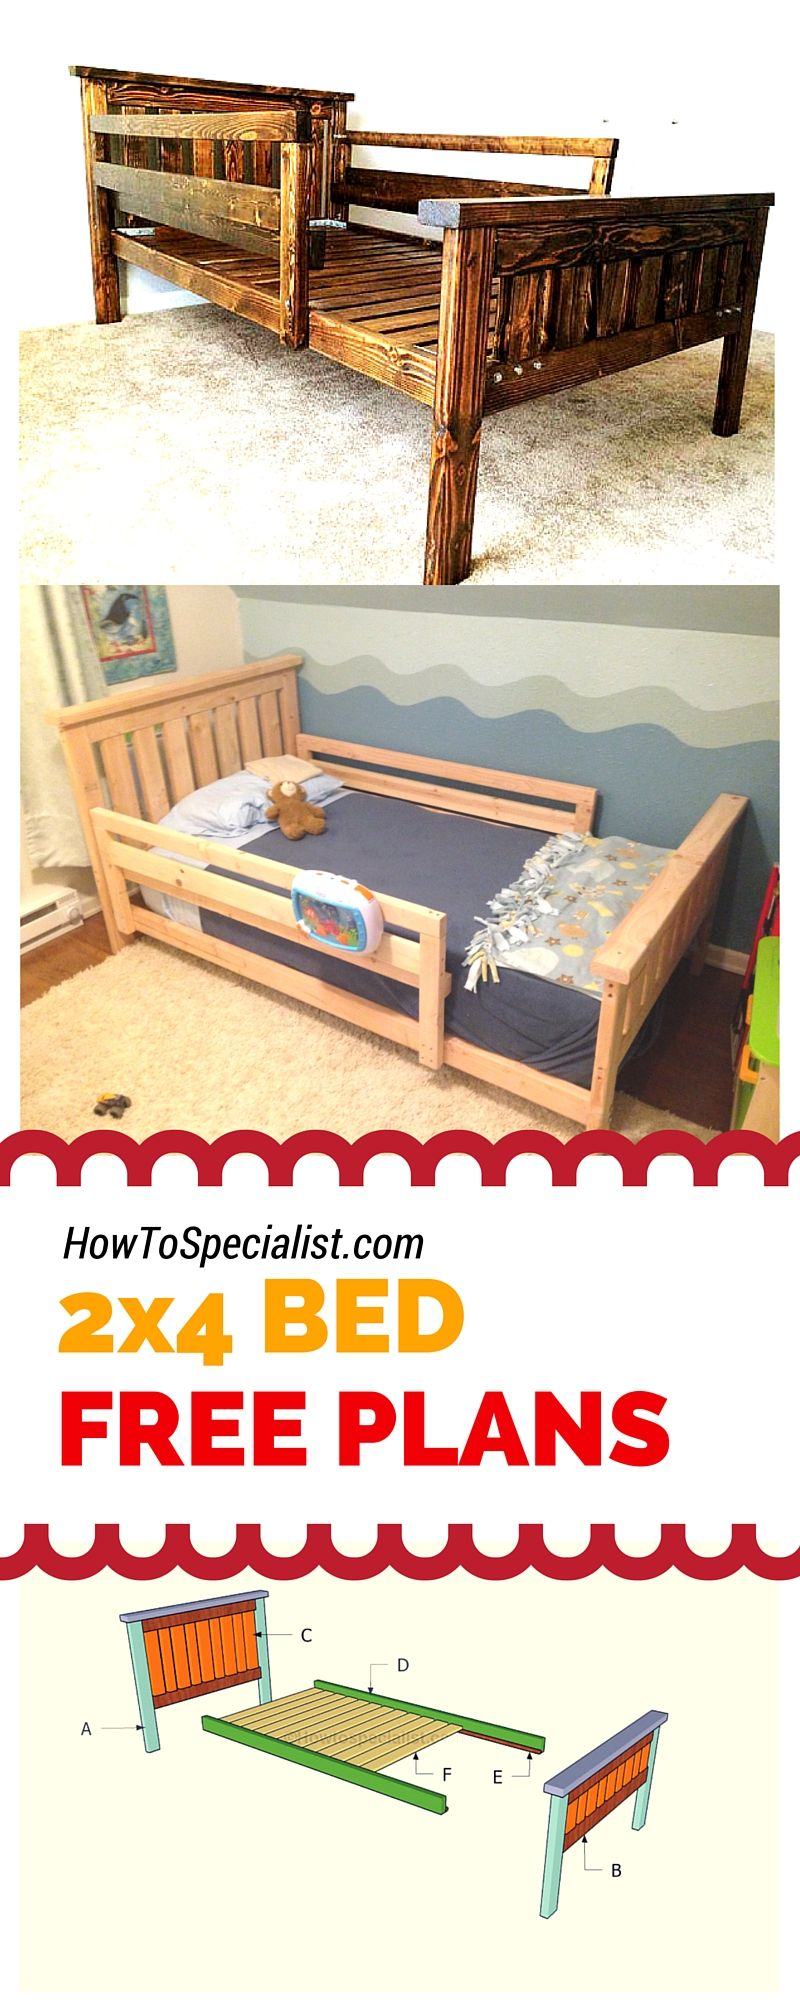 How to build a 2x4 bed frame Easy to follow free plans